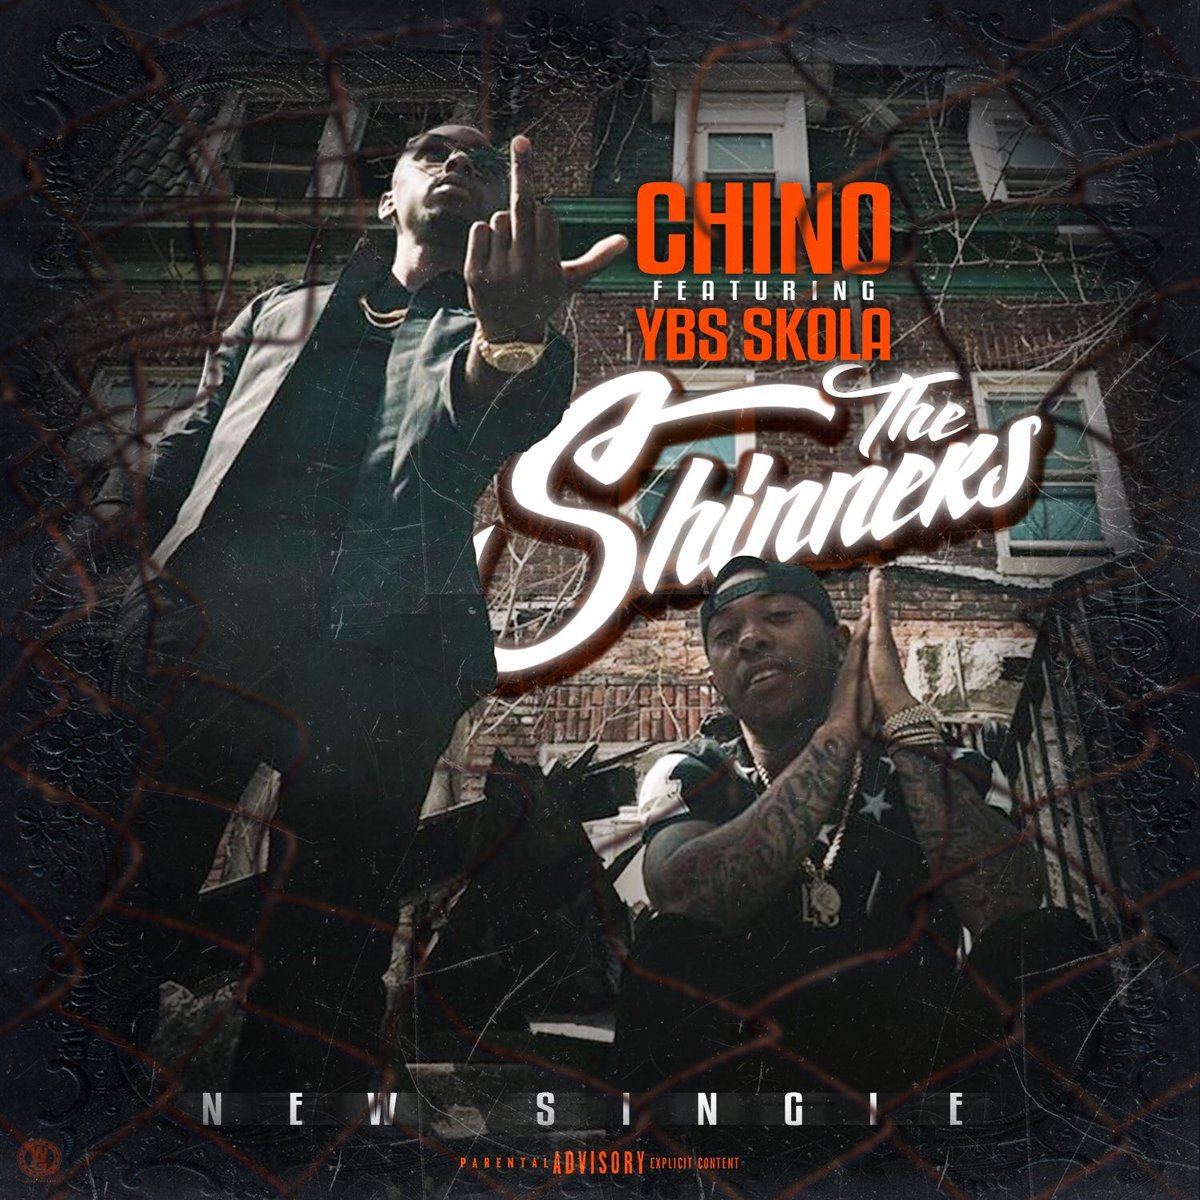 "CHINO ft. YBS SKOLA ""The Shinners"" Official Video"